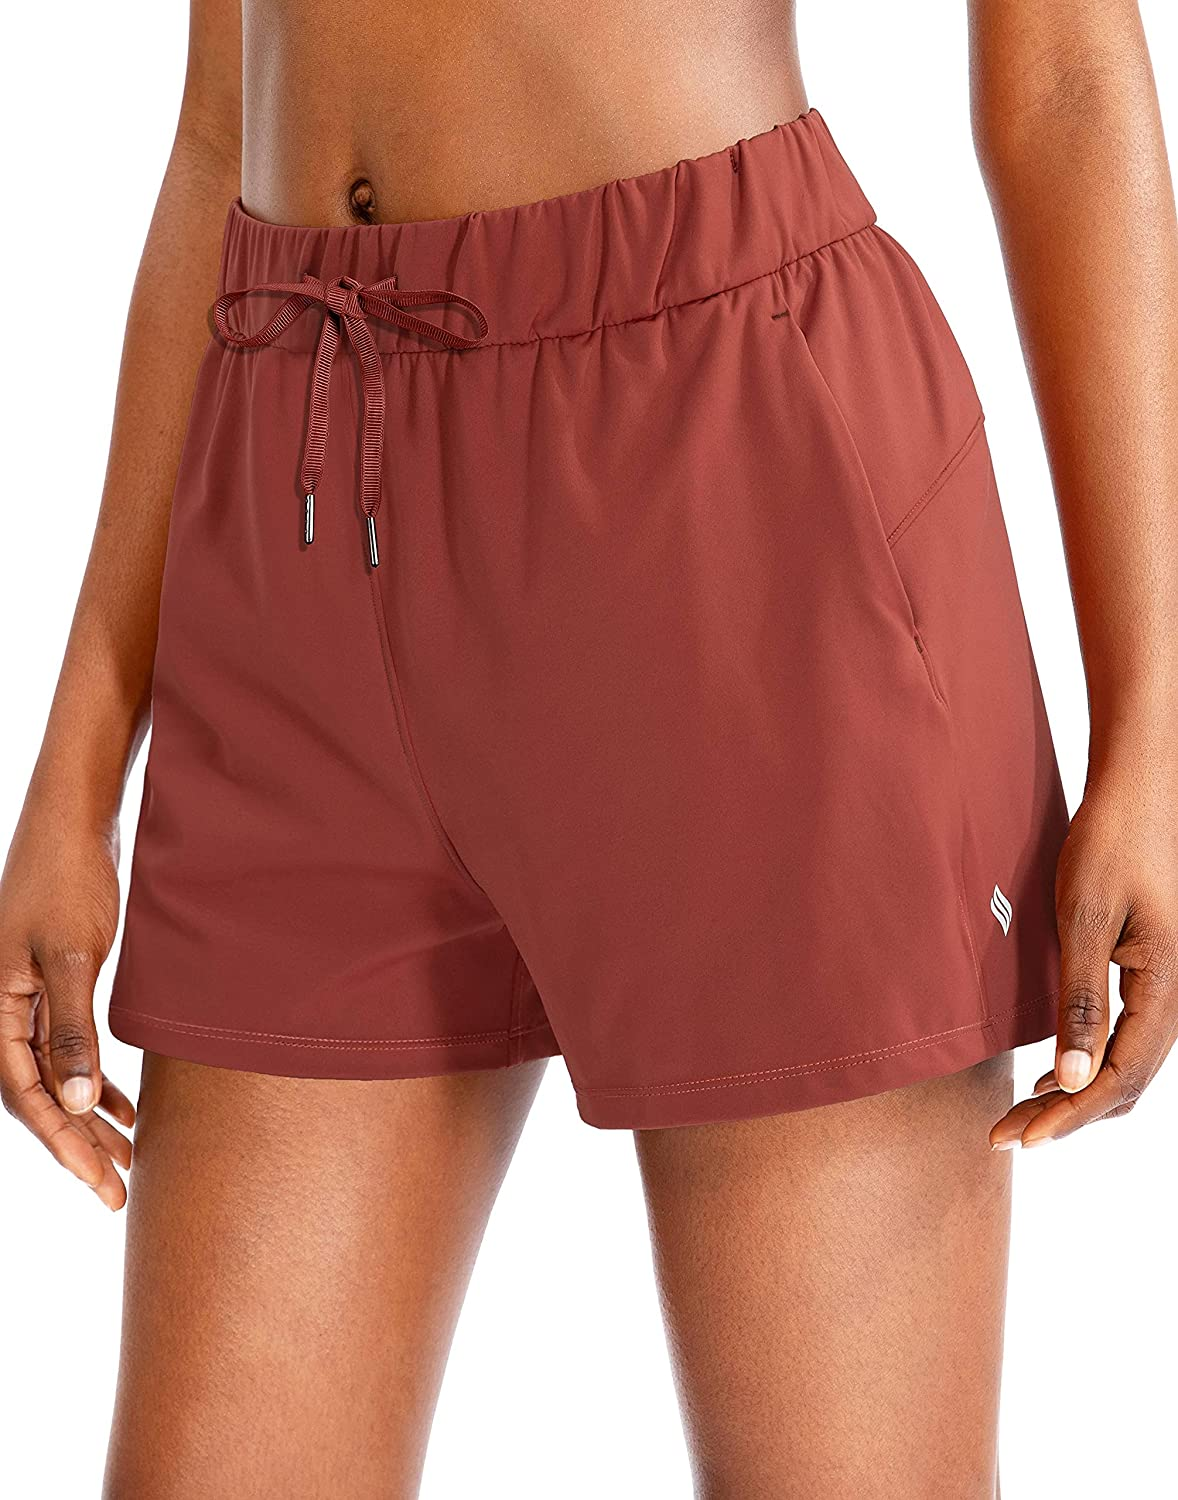 SANTINY Women's Lounge Shorts 2.5'' Quantity limited Ranking TOP4 Comfy Workout Hiking Athleti